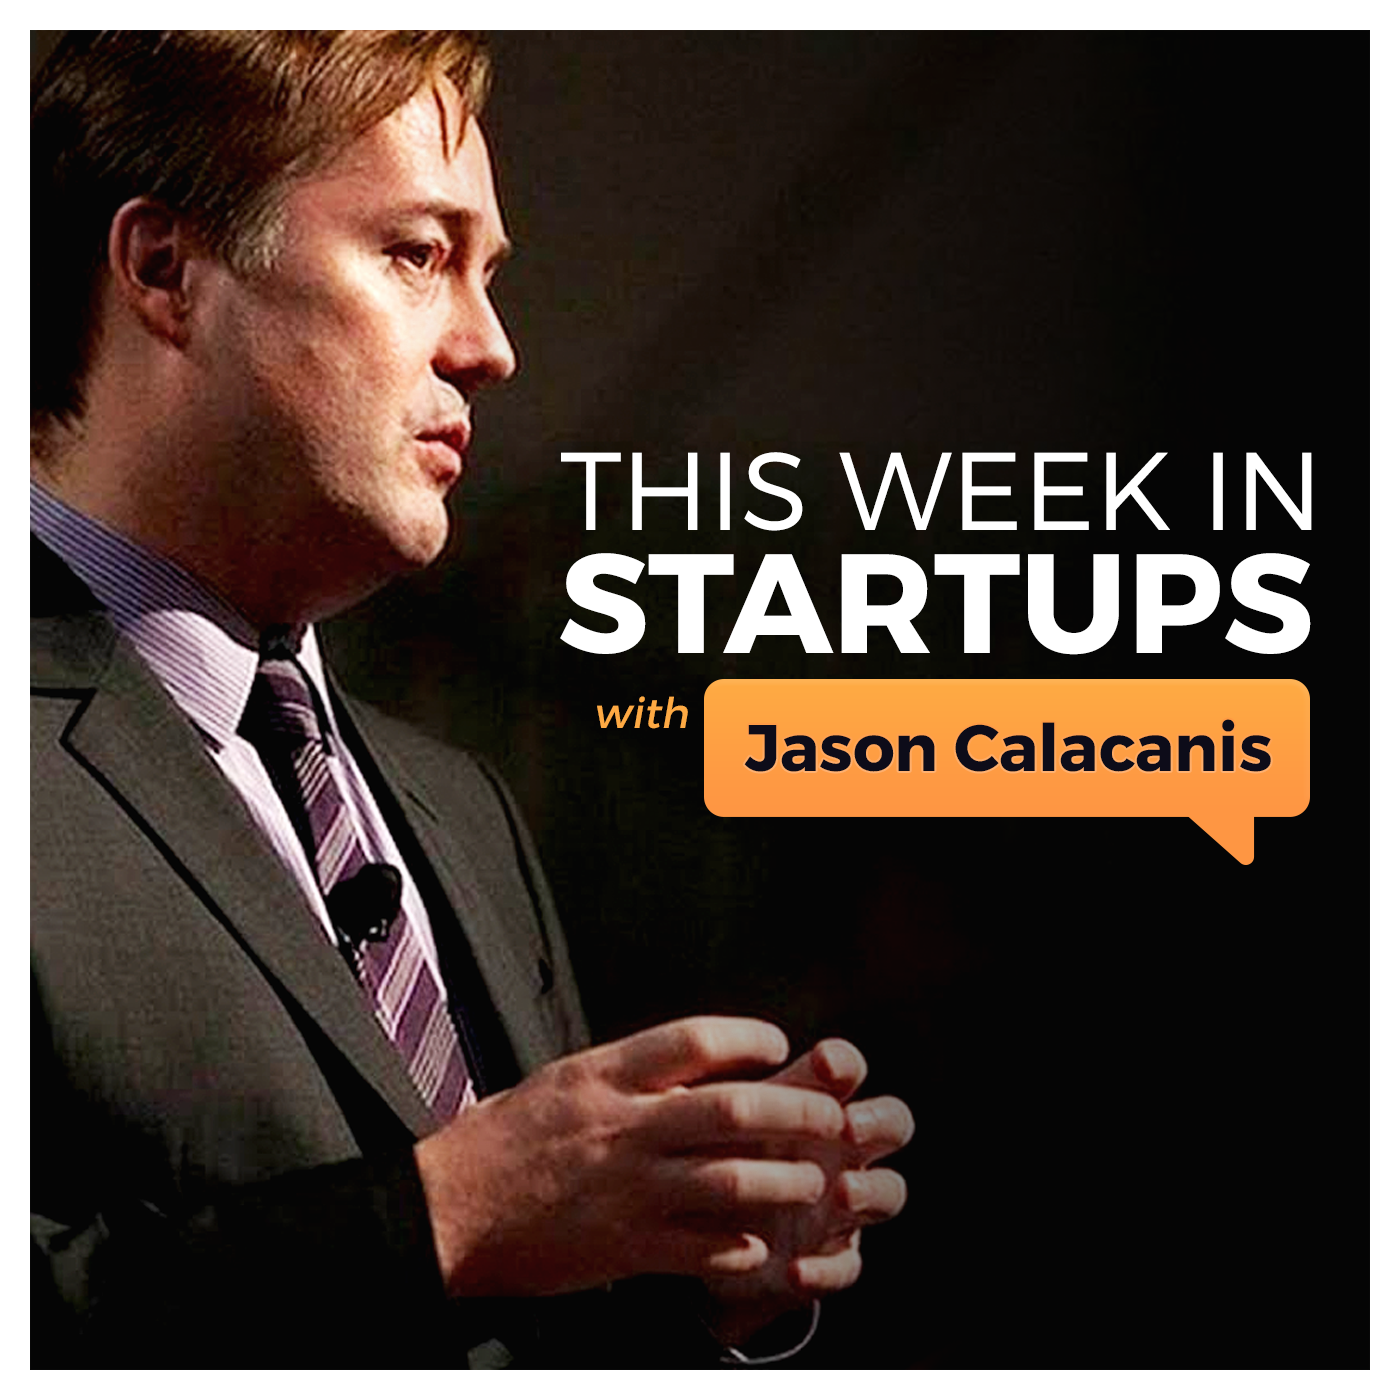 podcast thumbnail for 'This Week in Startups - Audio'